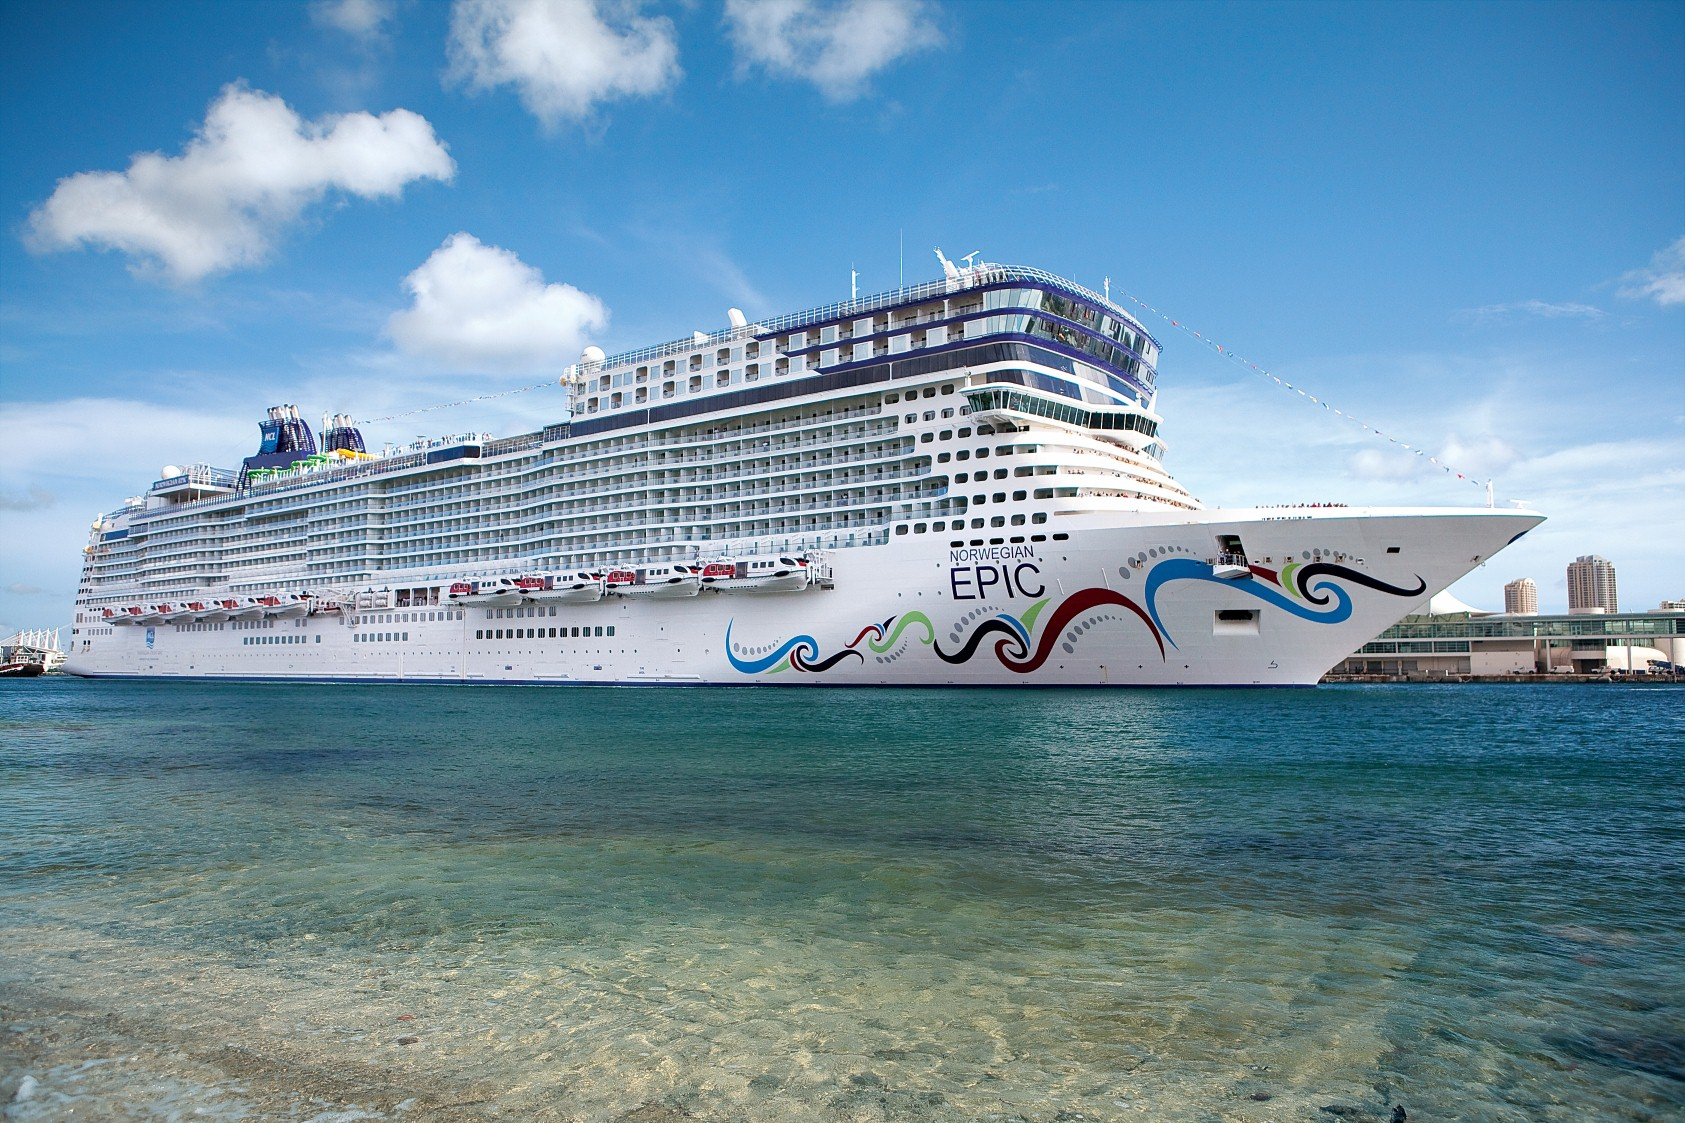 All Aboard: Cruise News for Week of August 3